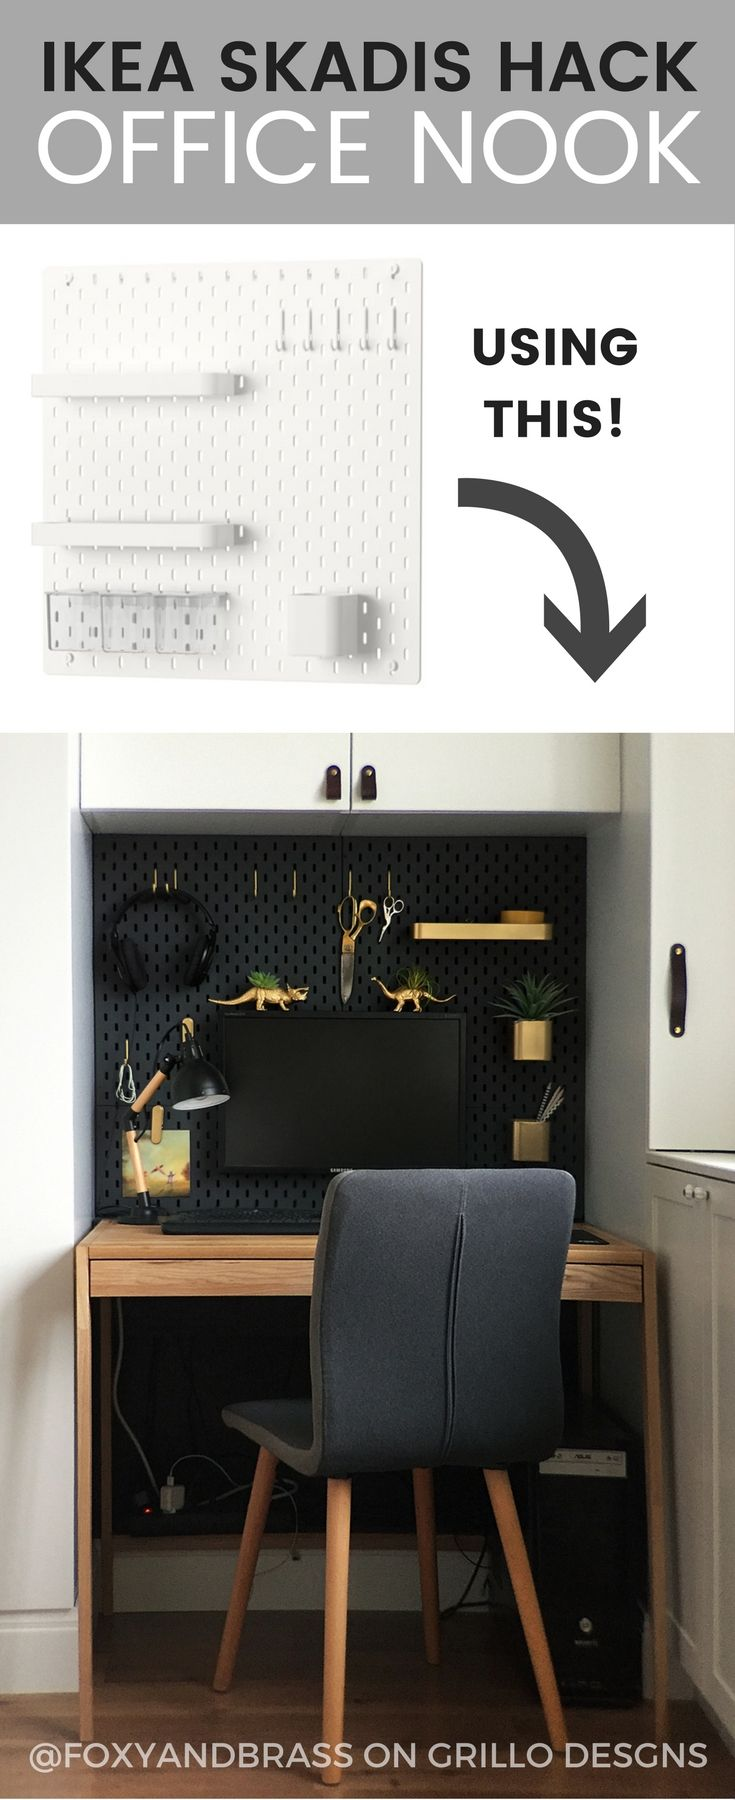 ikea skadis hack for a mini office nook my home pinterest arbeitszimmer buero and. Black Bedroom Furniture Sets. Home Design Ideas